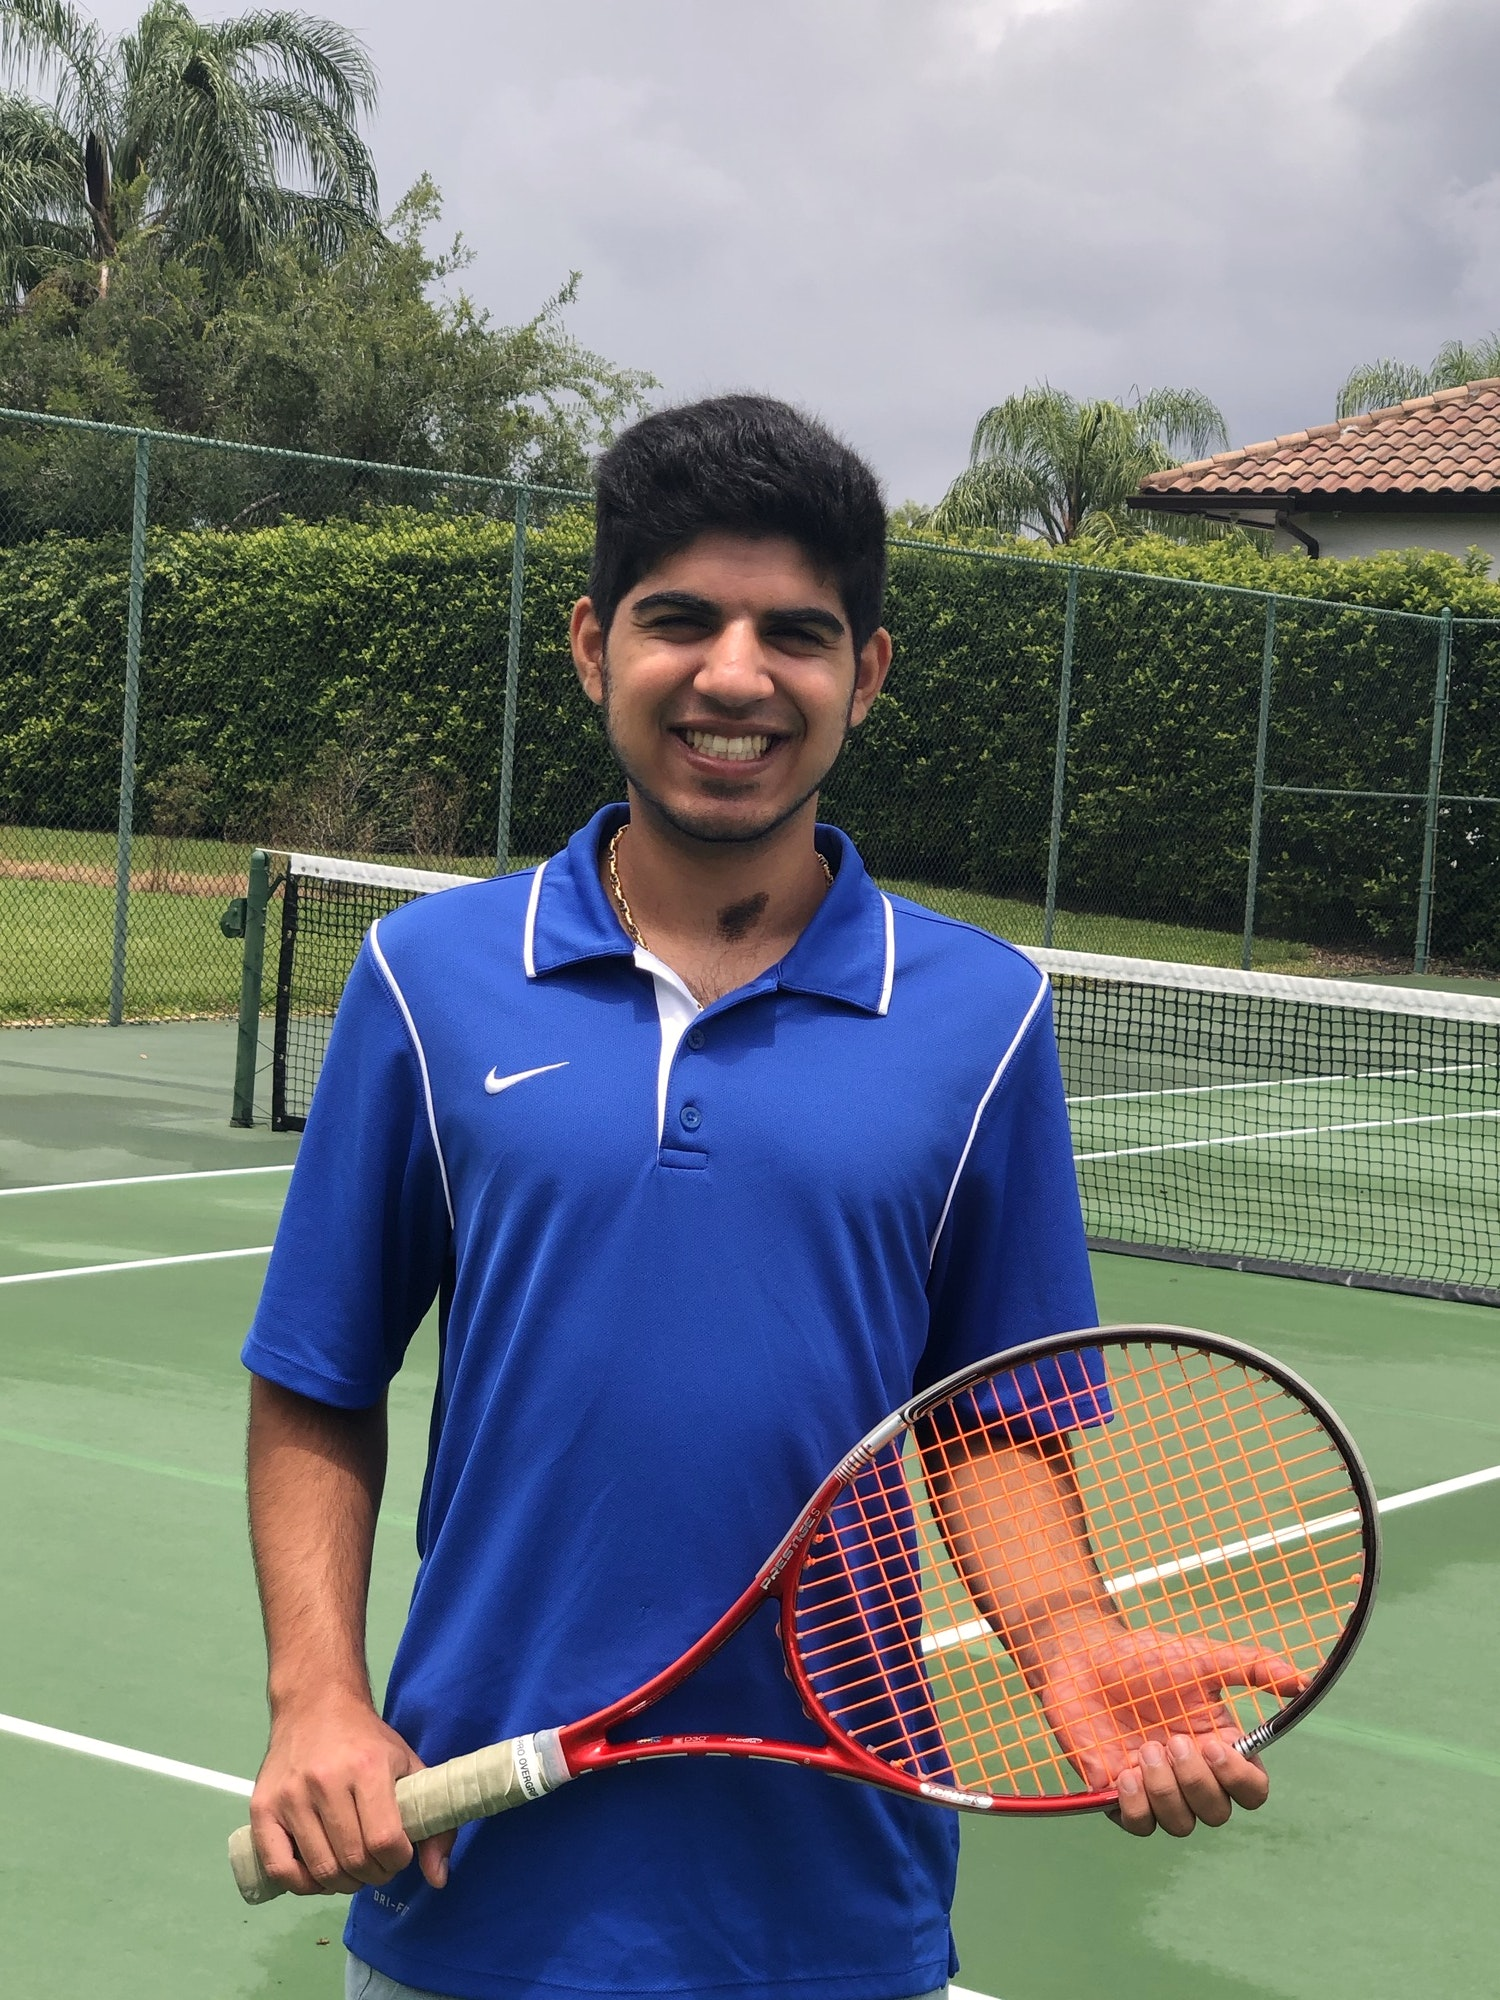 Rishi L. teaches tennis lessons in Windermere, FL